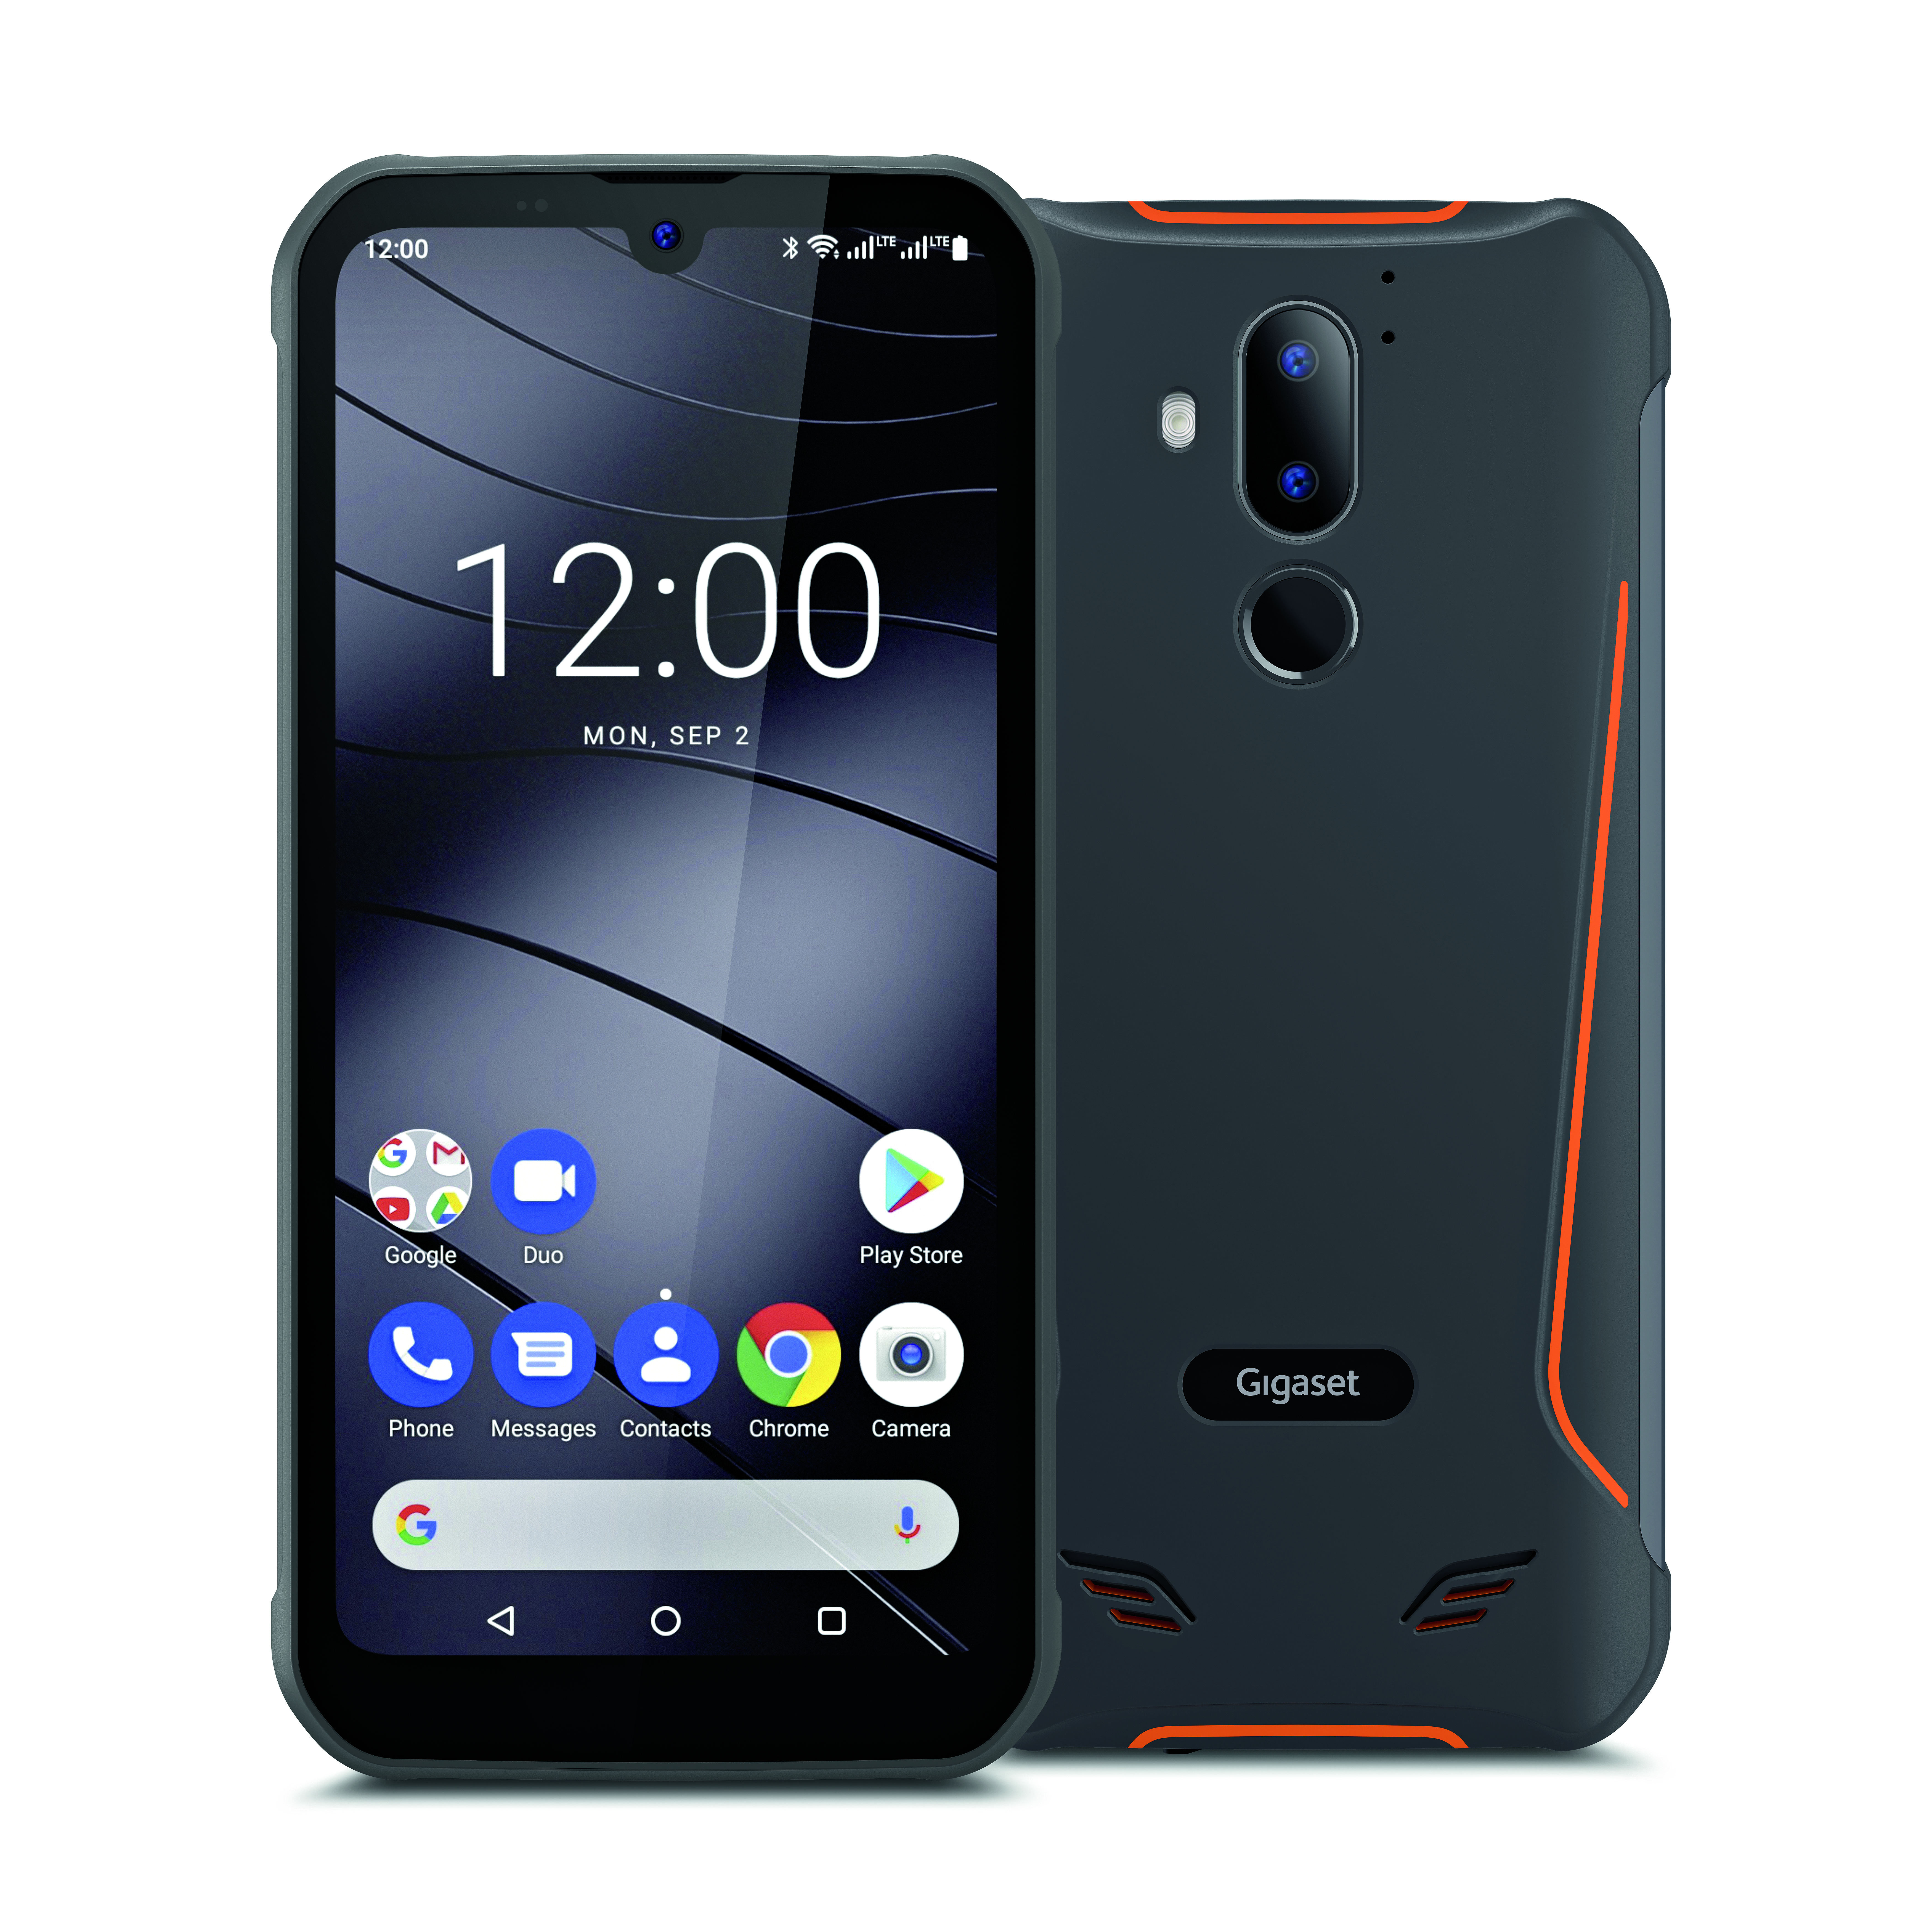 Tremors: win a Gigaset outdoor smartphone to start!